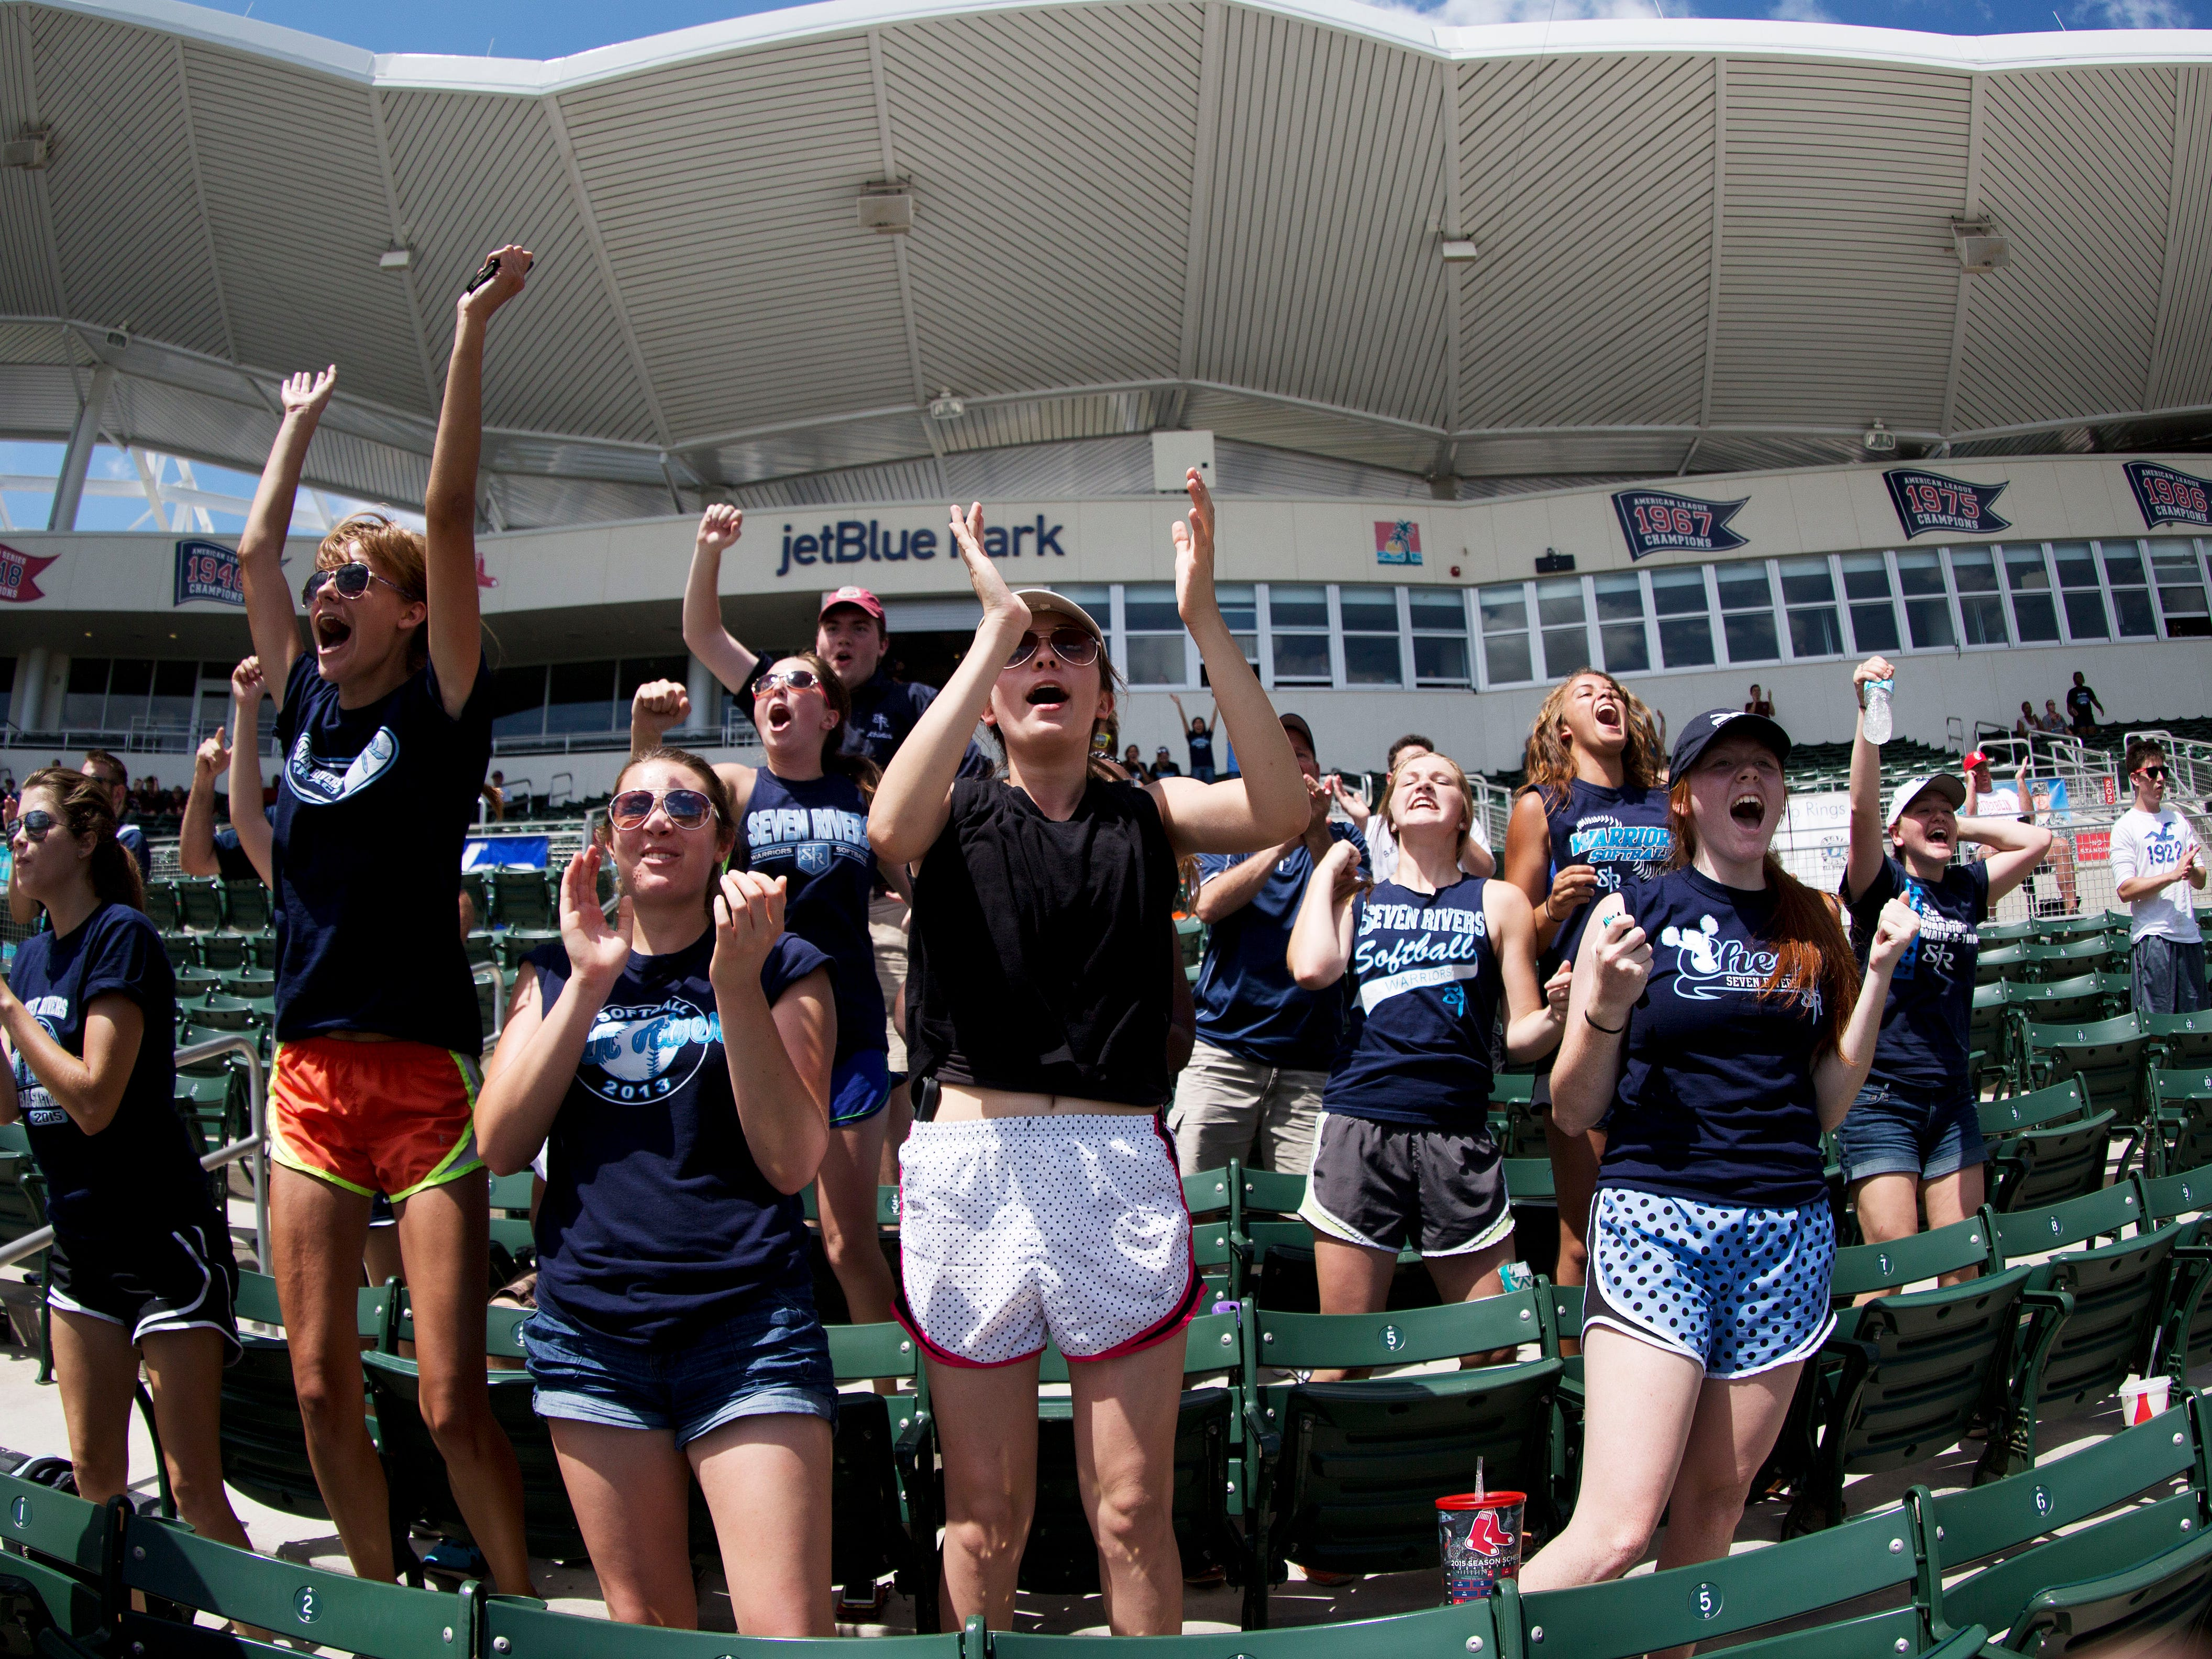 Students of Seven Rivers Christian School cheer on their team in the FHSSA state 2A baseball semi-final games against Bayshore Christian School on Wednesday. Seven Rivers ended up losing in 11 innings 4-3.